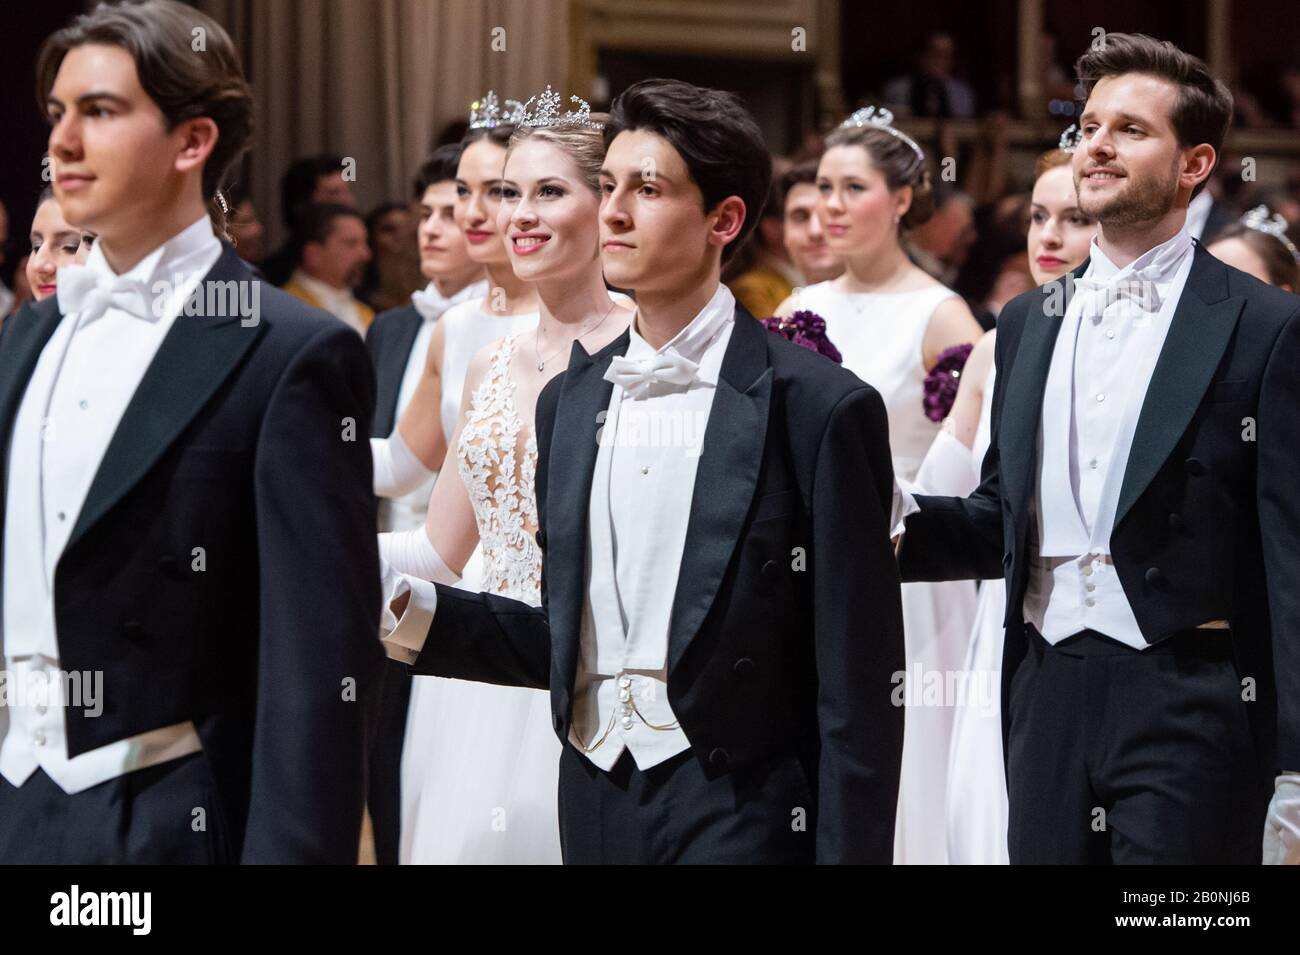 Vienna, Austria. 20th Feb, 2020. Dancers attend the Opera Ball at the State Opera House in Vienna, Austria, Feb. 20, 2020. The 2020 Vienna Opera Ball was held on Thursday night. Credit: Guo Chen/Xinhua/Alamy Live News Stock Photo